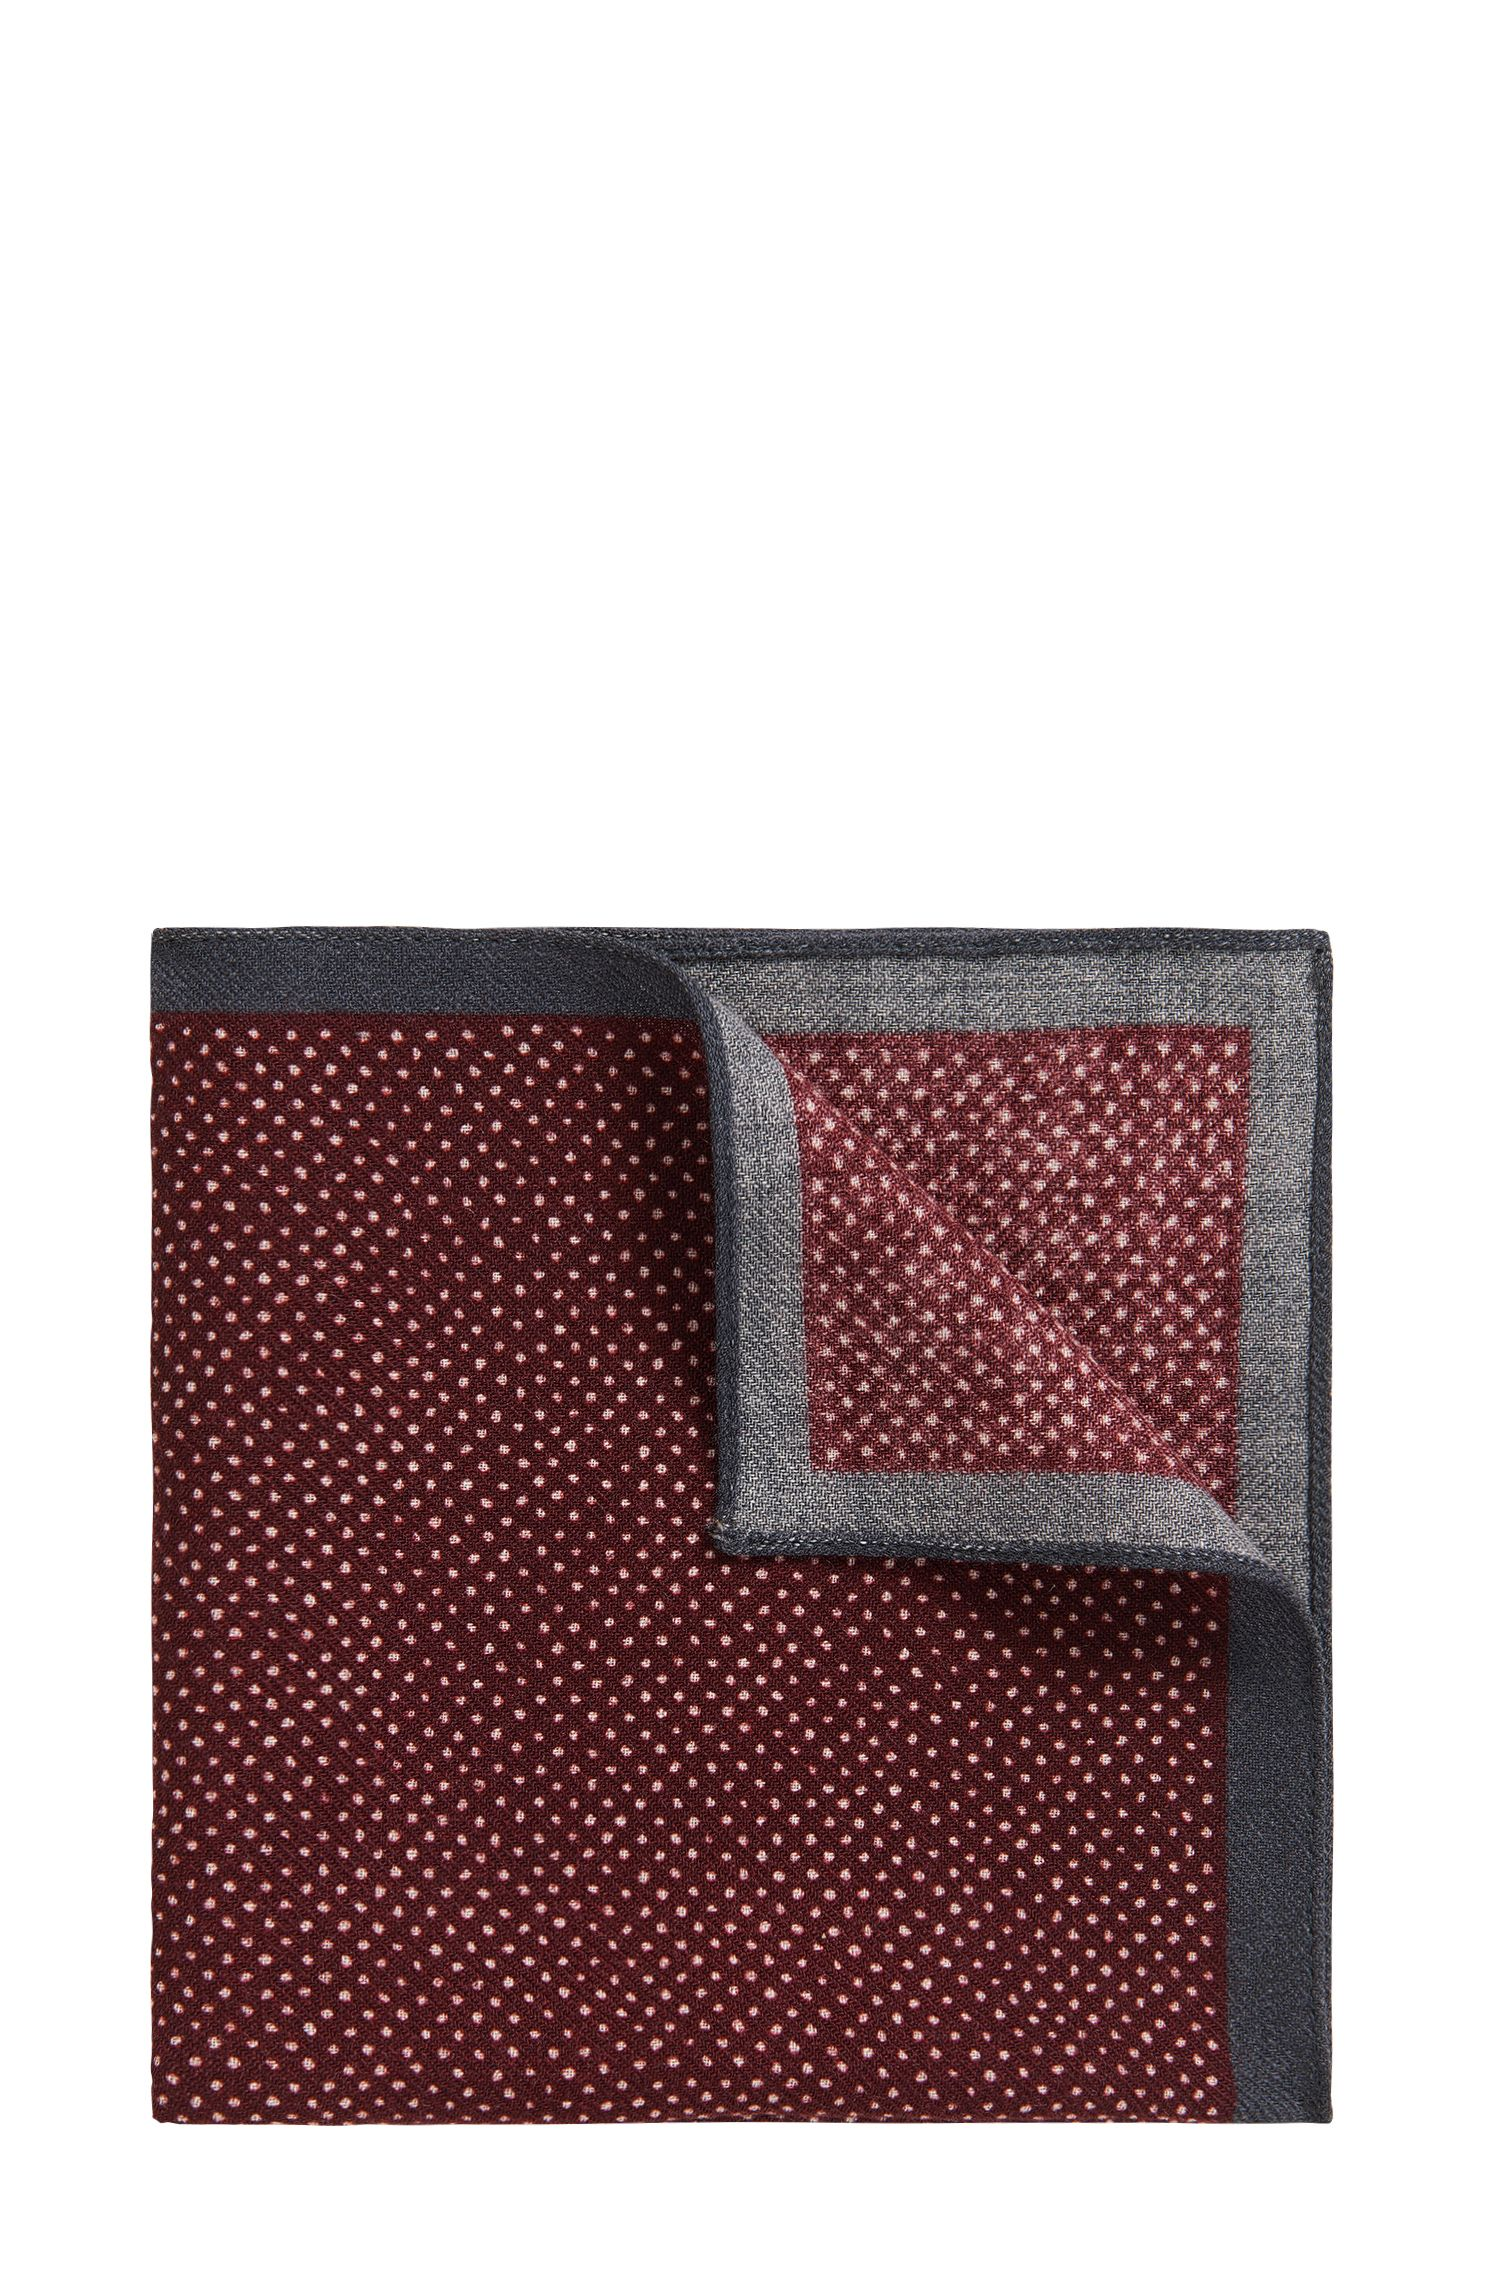 'Pocket sq. 33x33 cm' | Pindot Wool Pocket Square